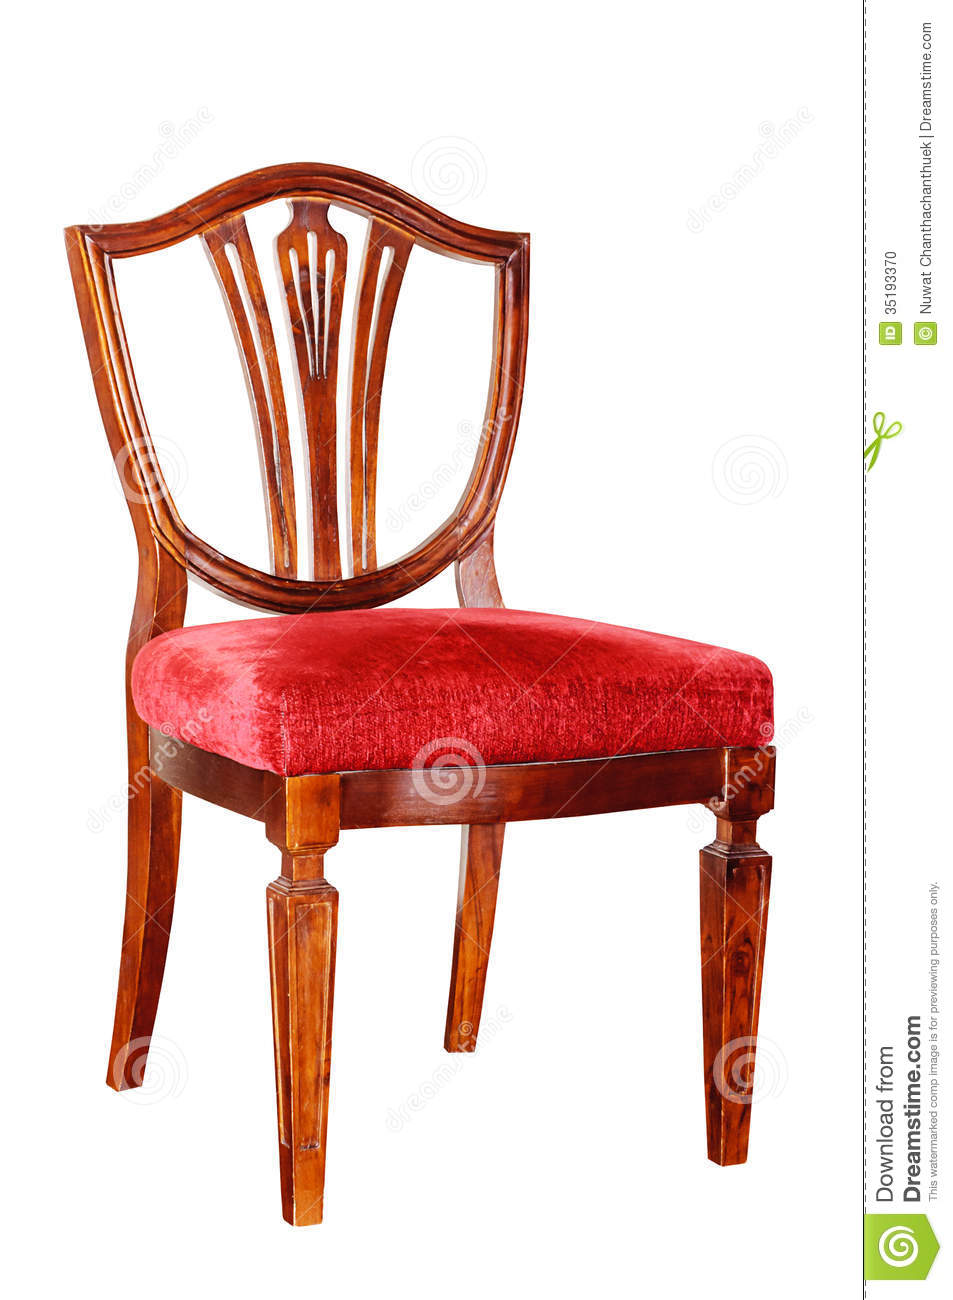 wooden chair stock photo image 35193370